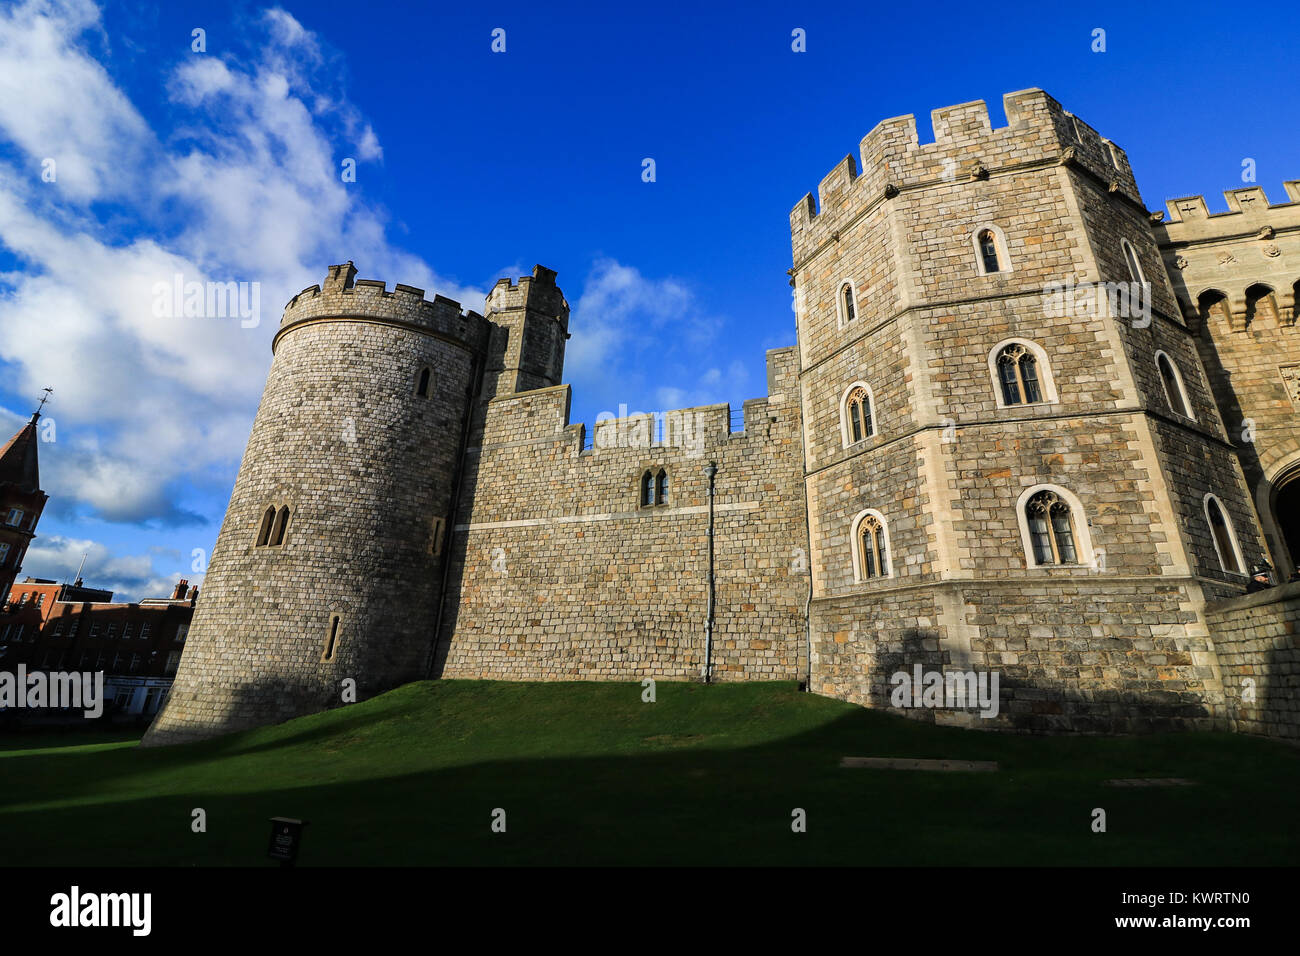 Windsor Berkshire.5th January 2018. A proposal by Windsor council leader Simon Dudley who has been widely criticised - Stock Image